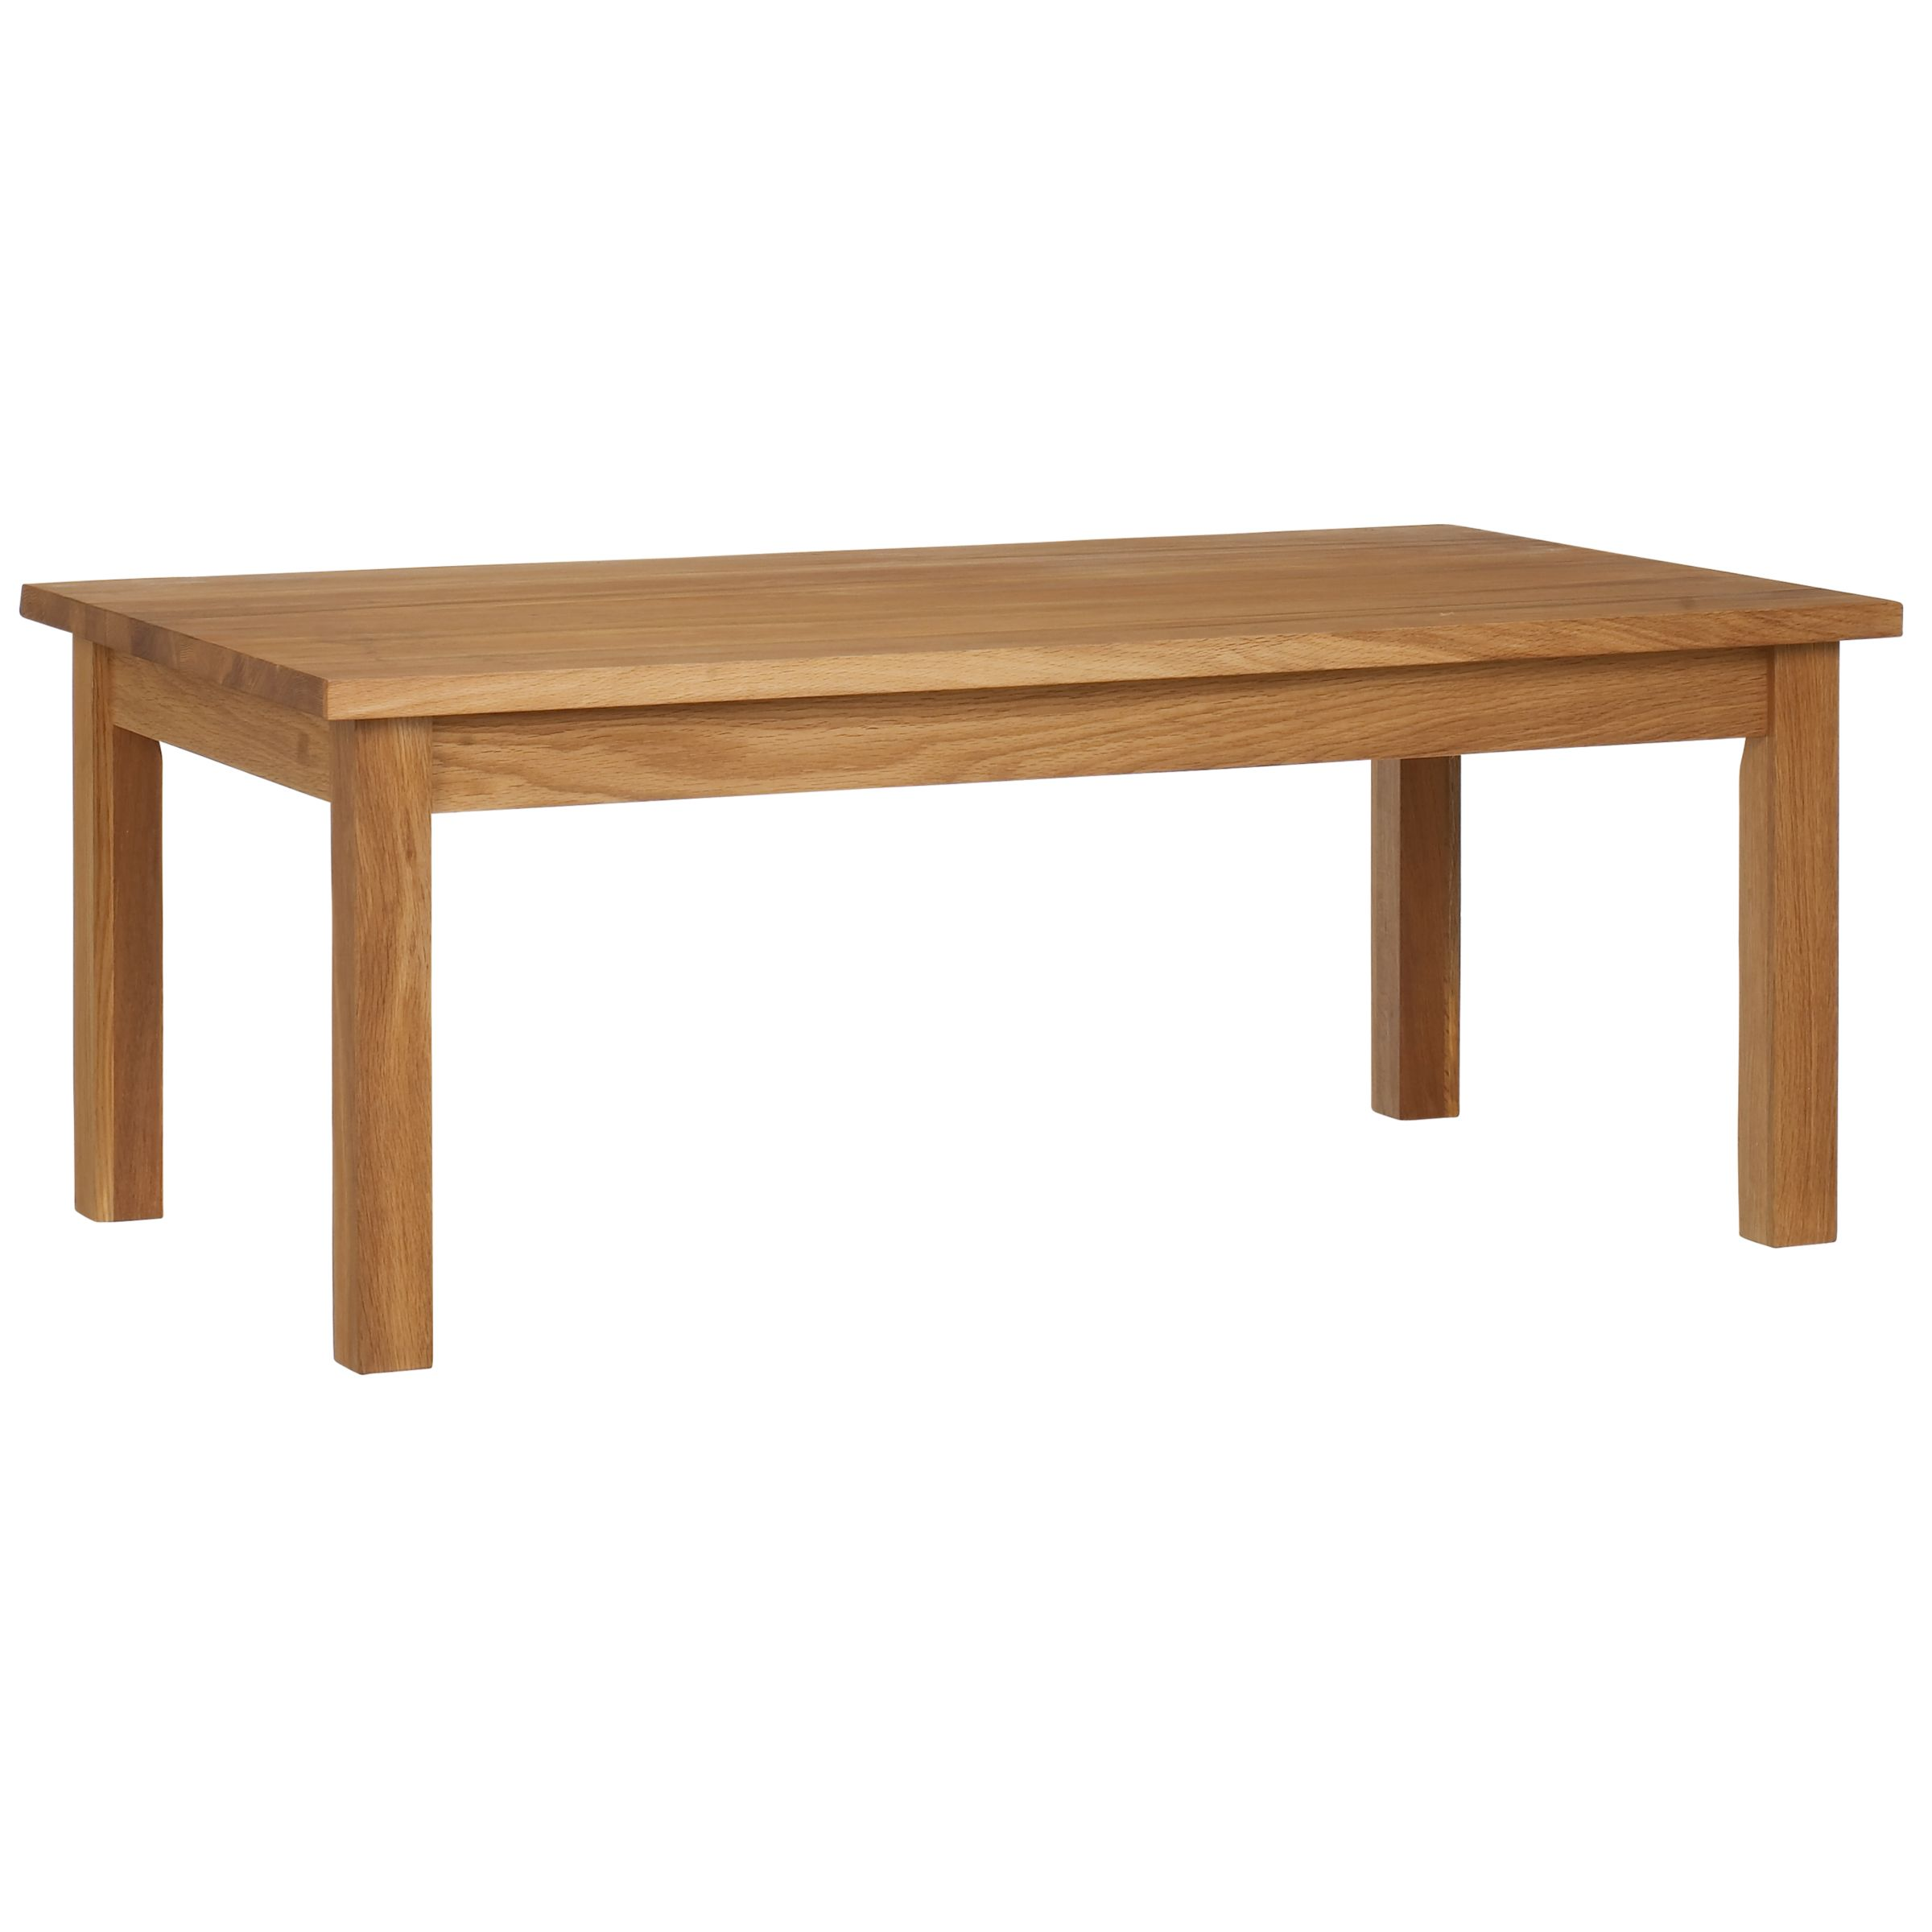 John lewis coffee tables reviews for Coffee tables john lewis